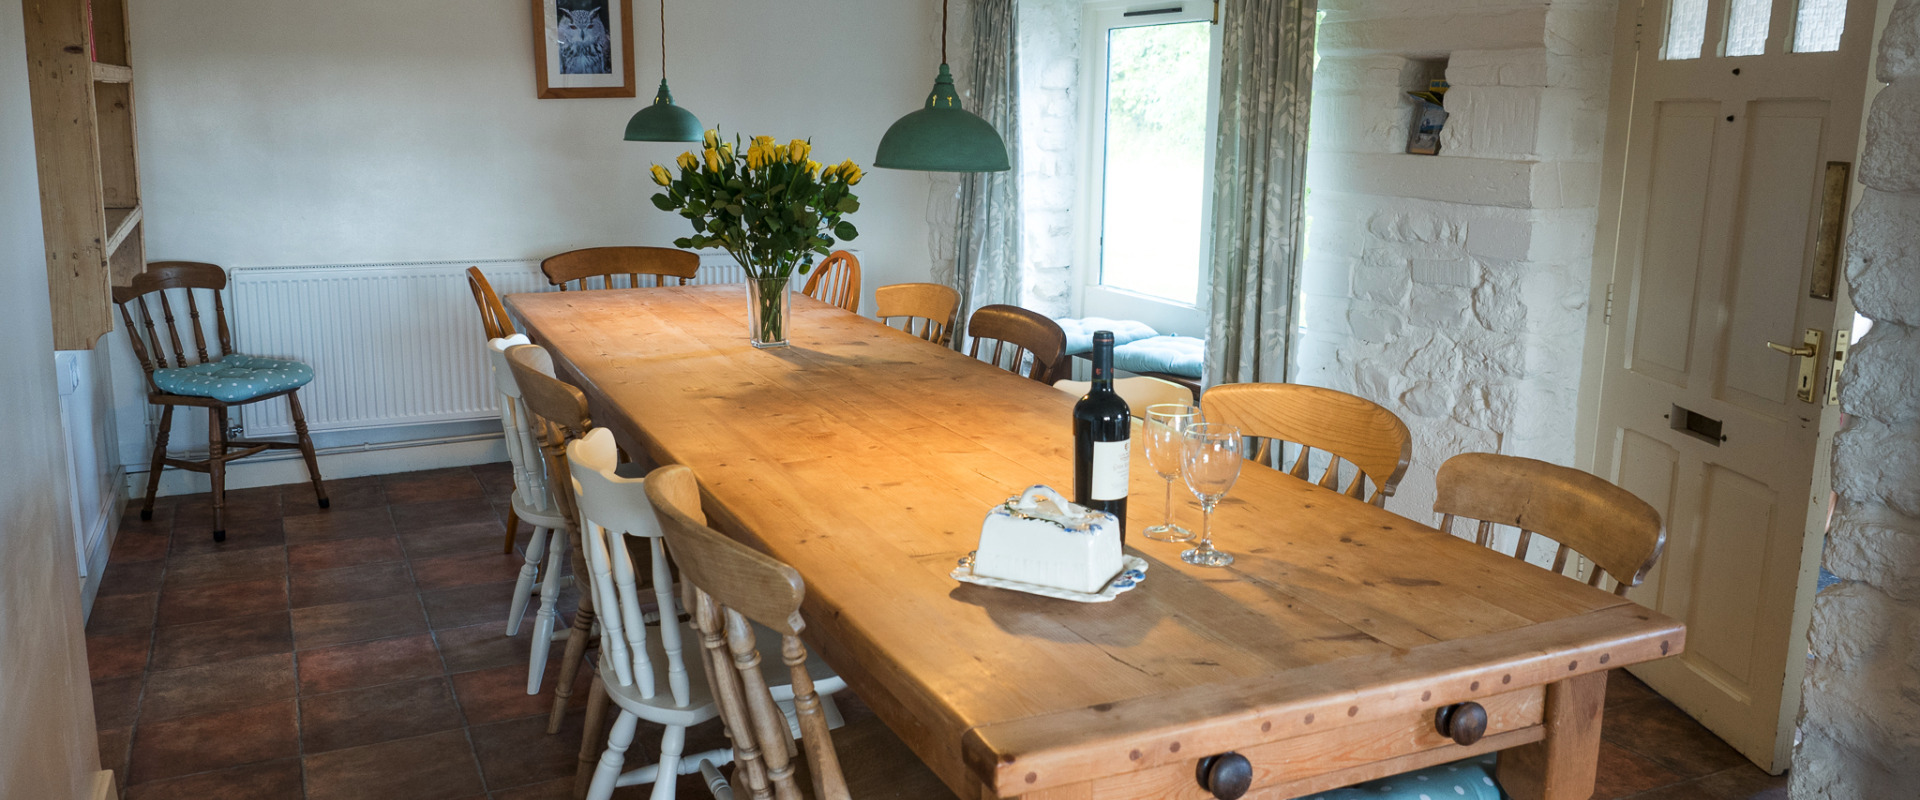 Large kitchen in Higher Westcott for self-catering large groups in Devon